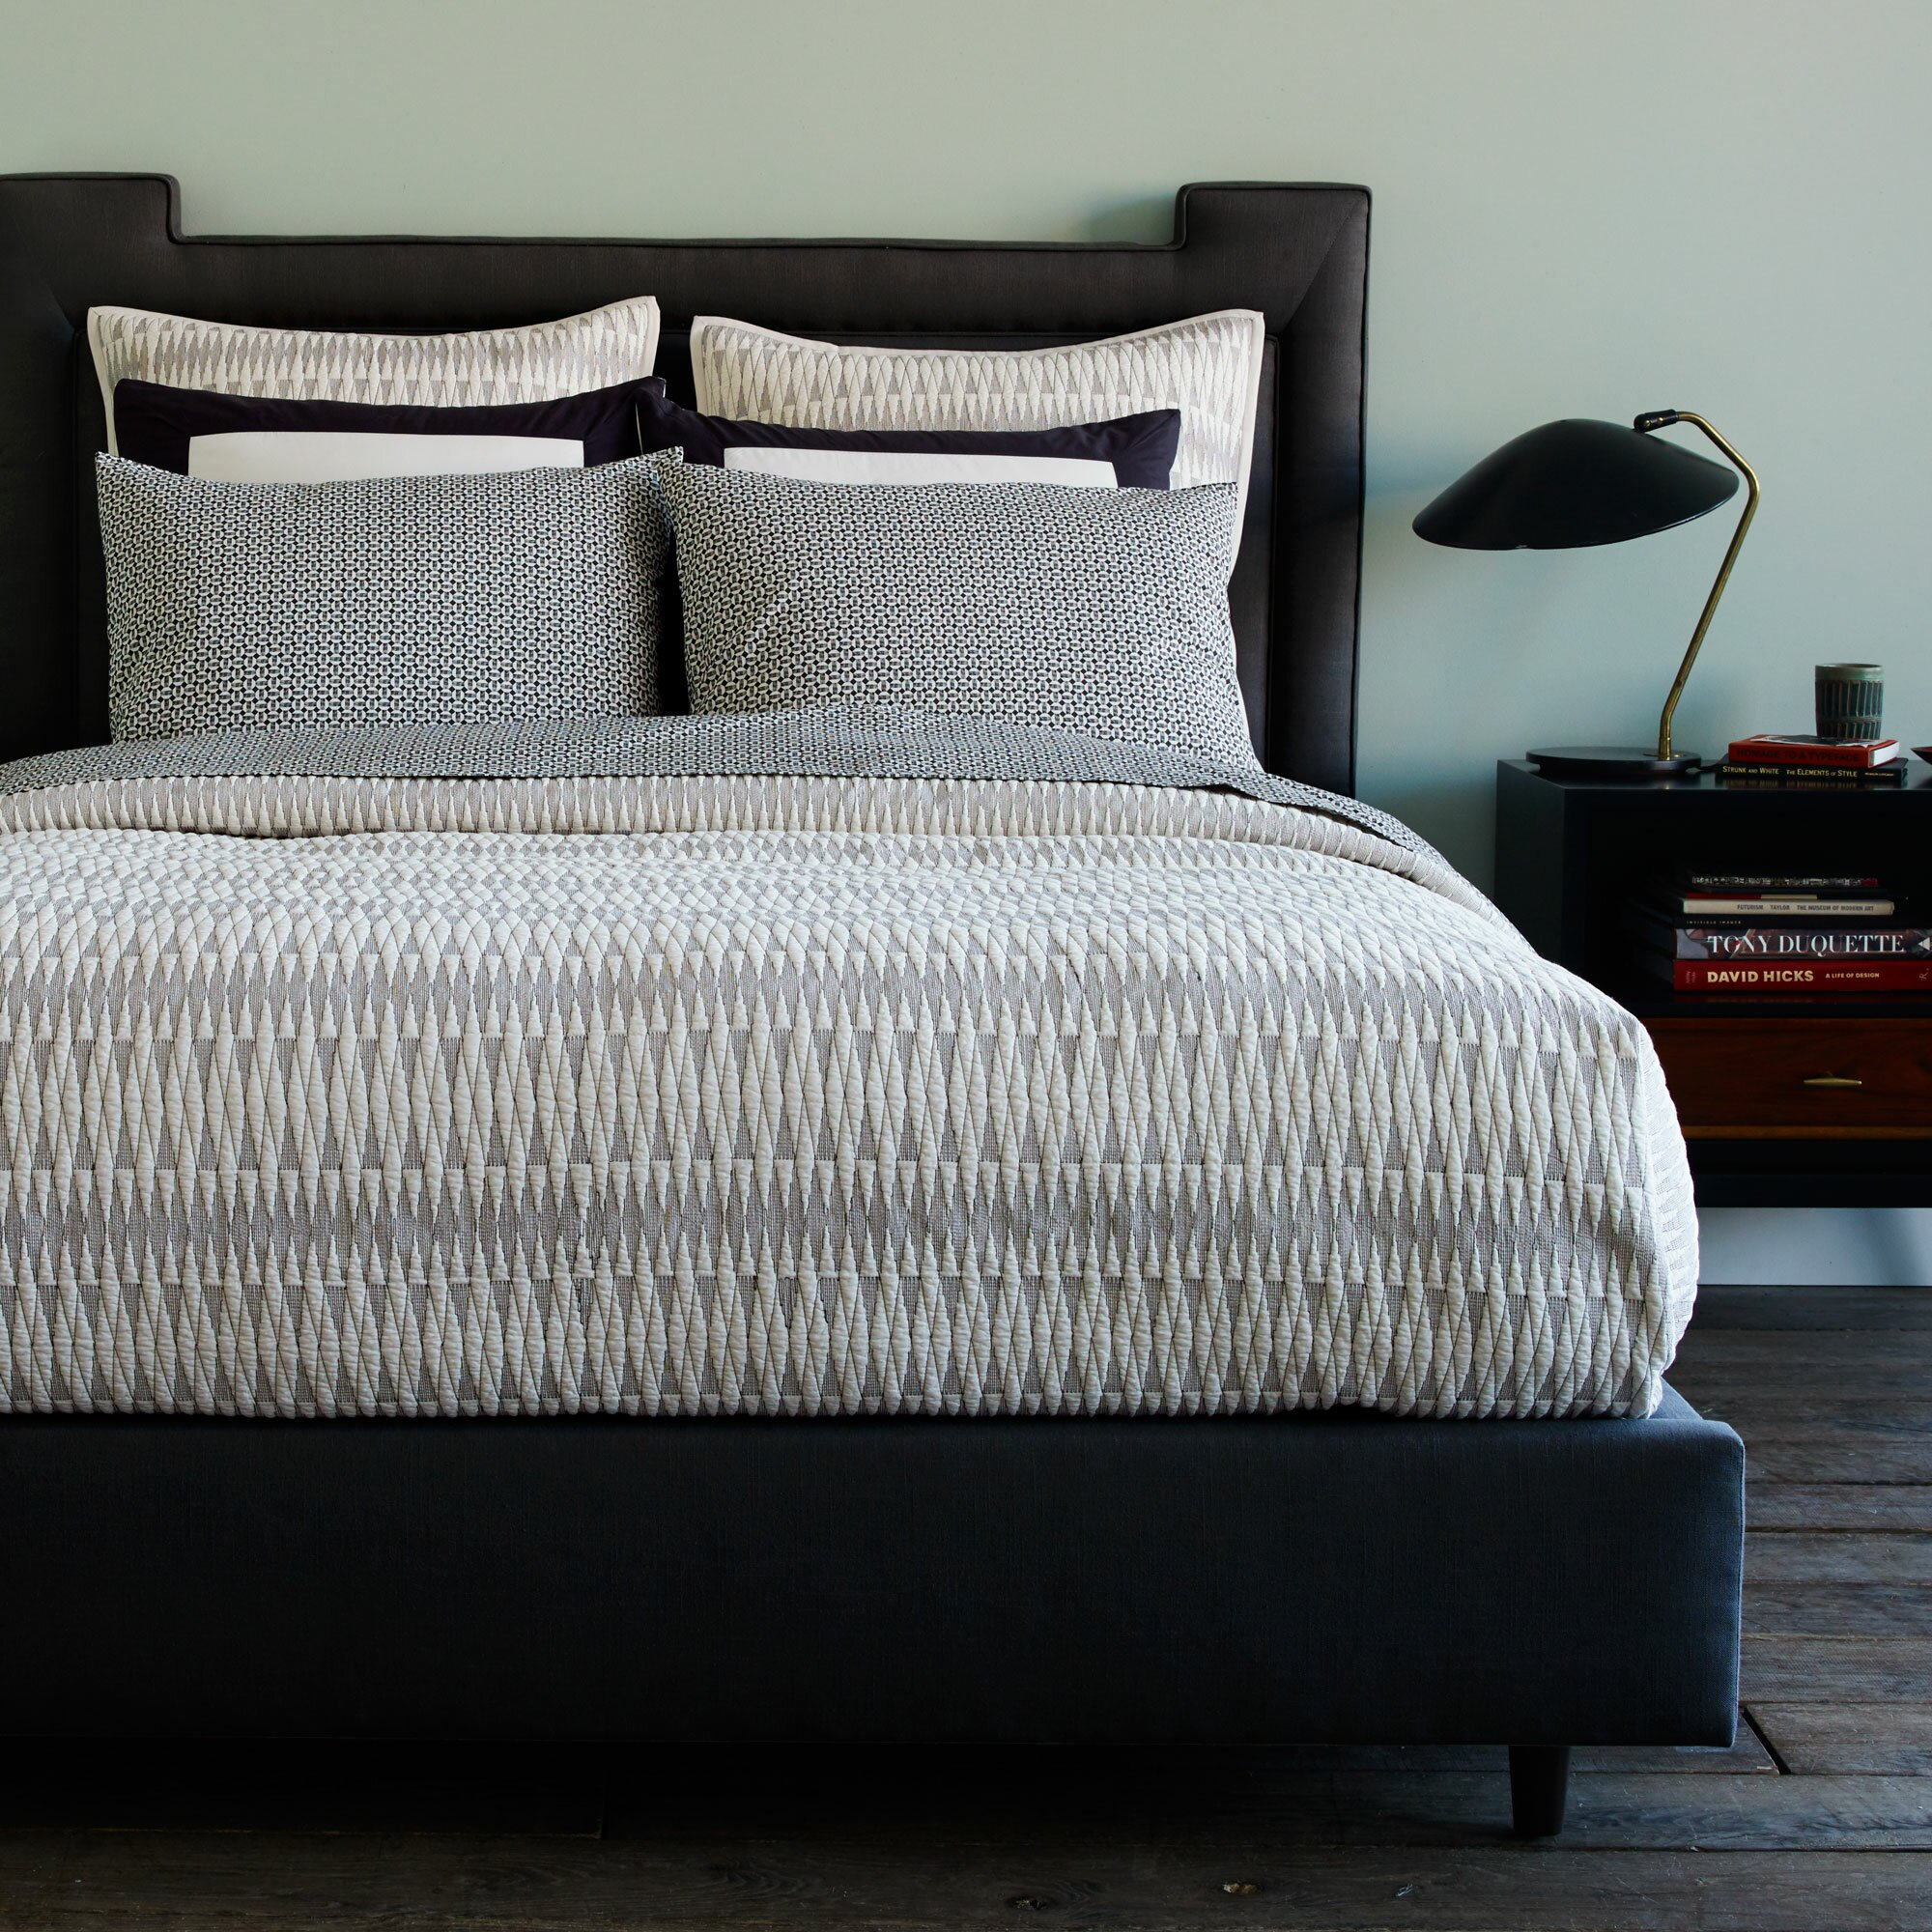 Dwellstudio Loire Ink Quilt Amp Reviews Dwellstudio